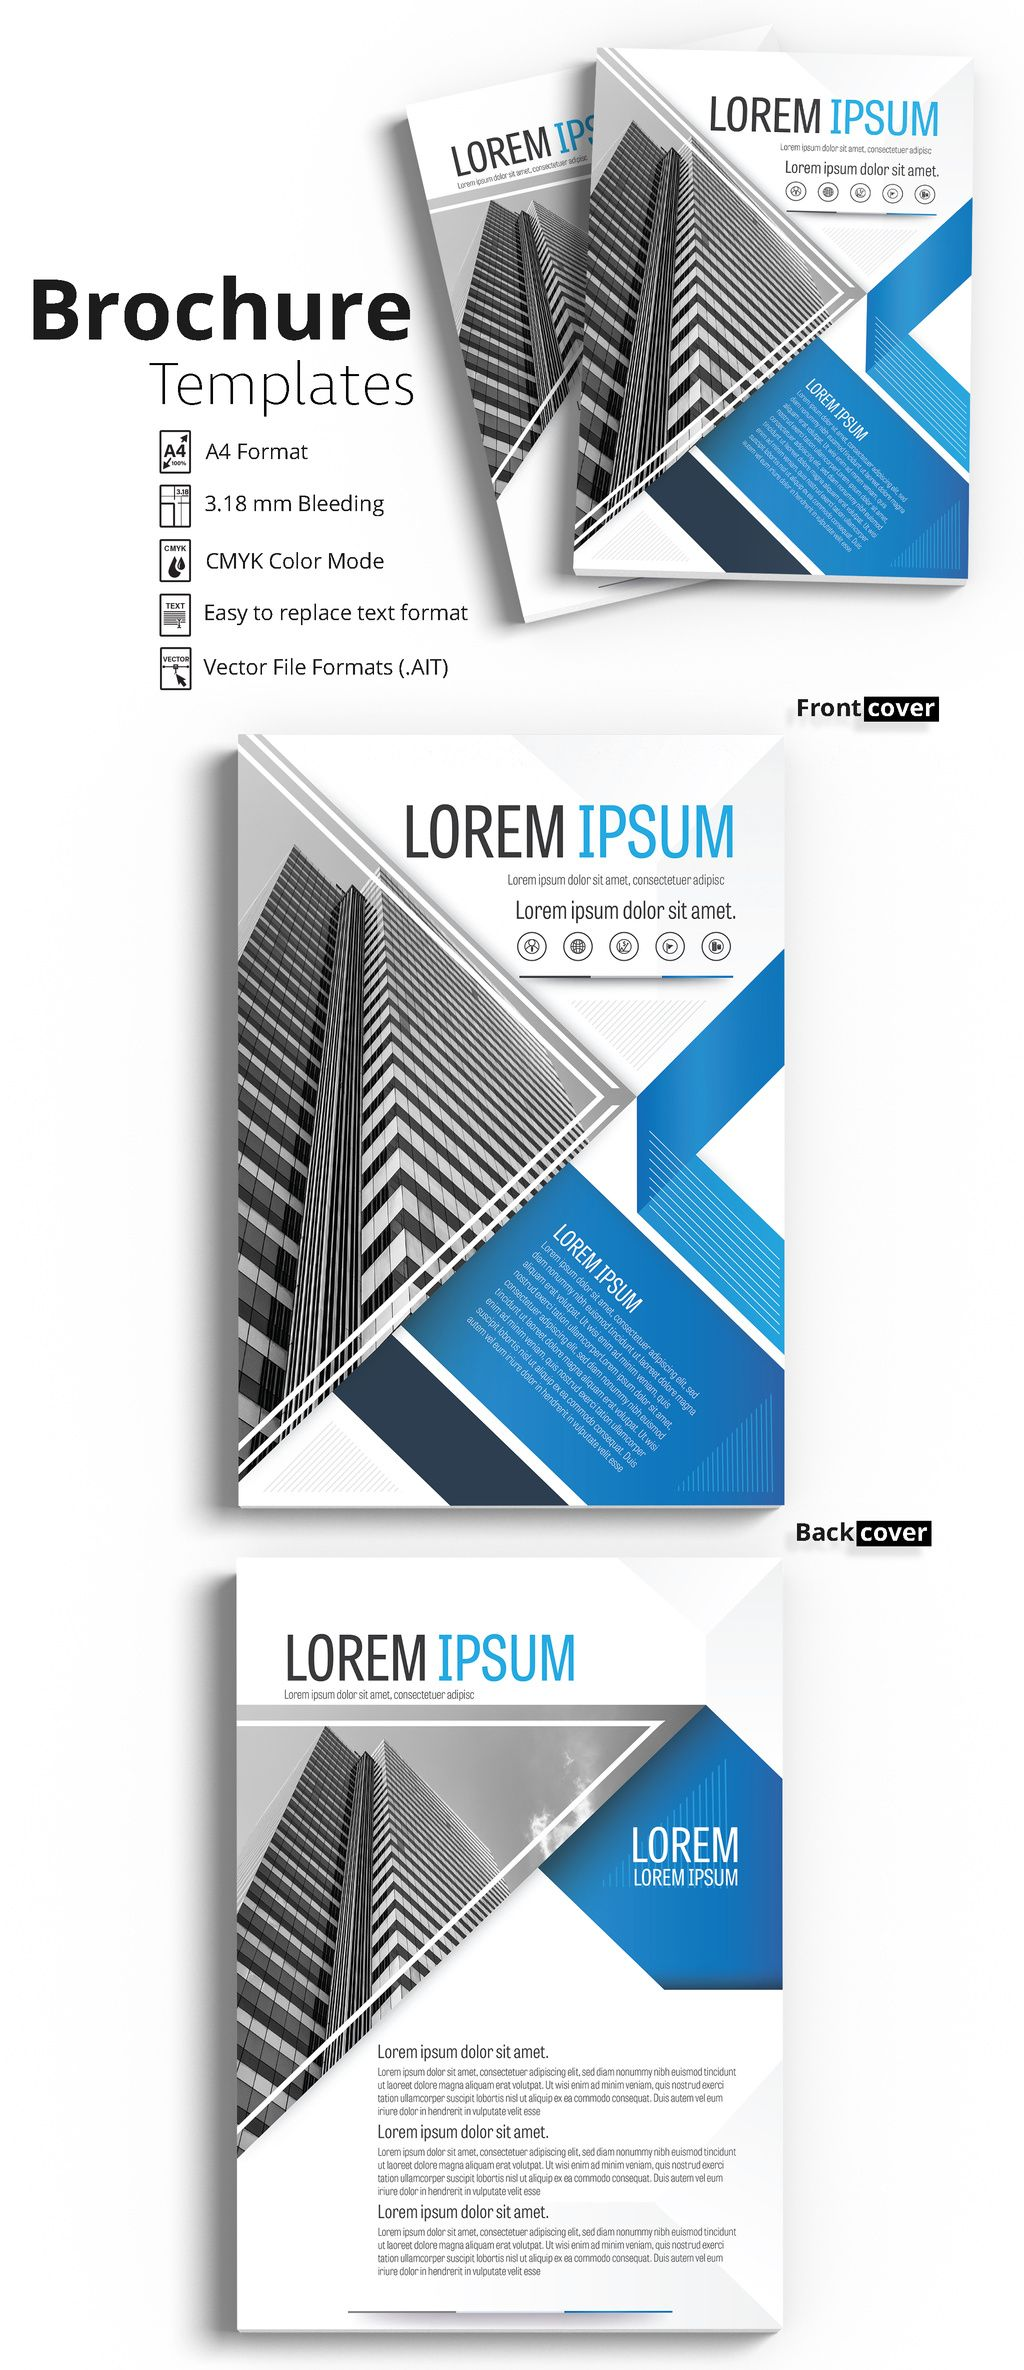 Brochure Cover Layout With Blue And Gray Accents   Image  Adobe